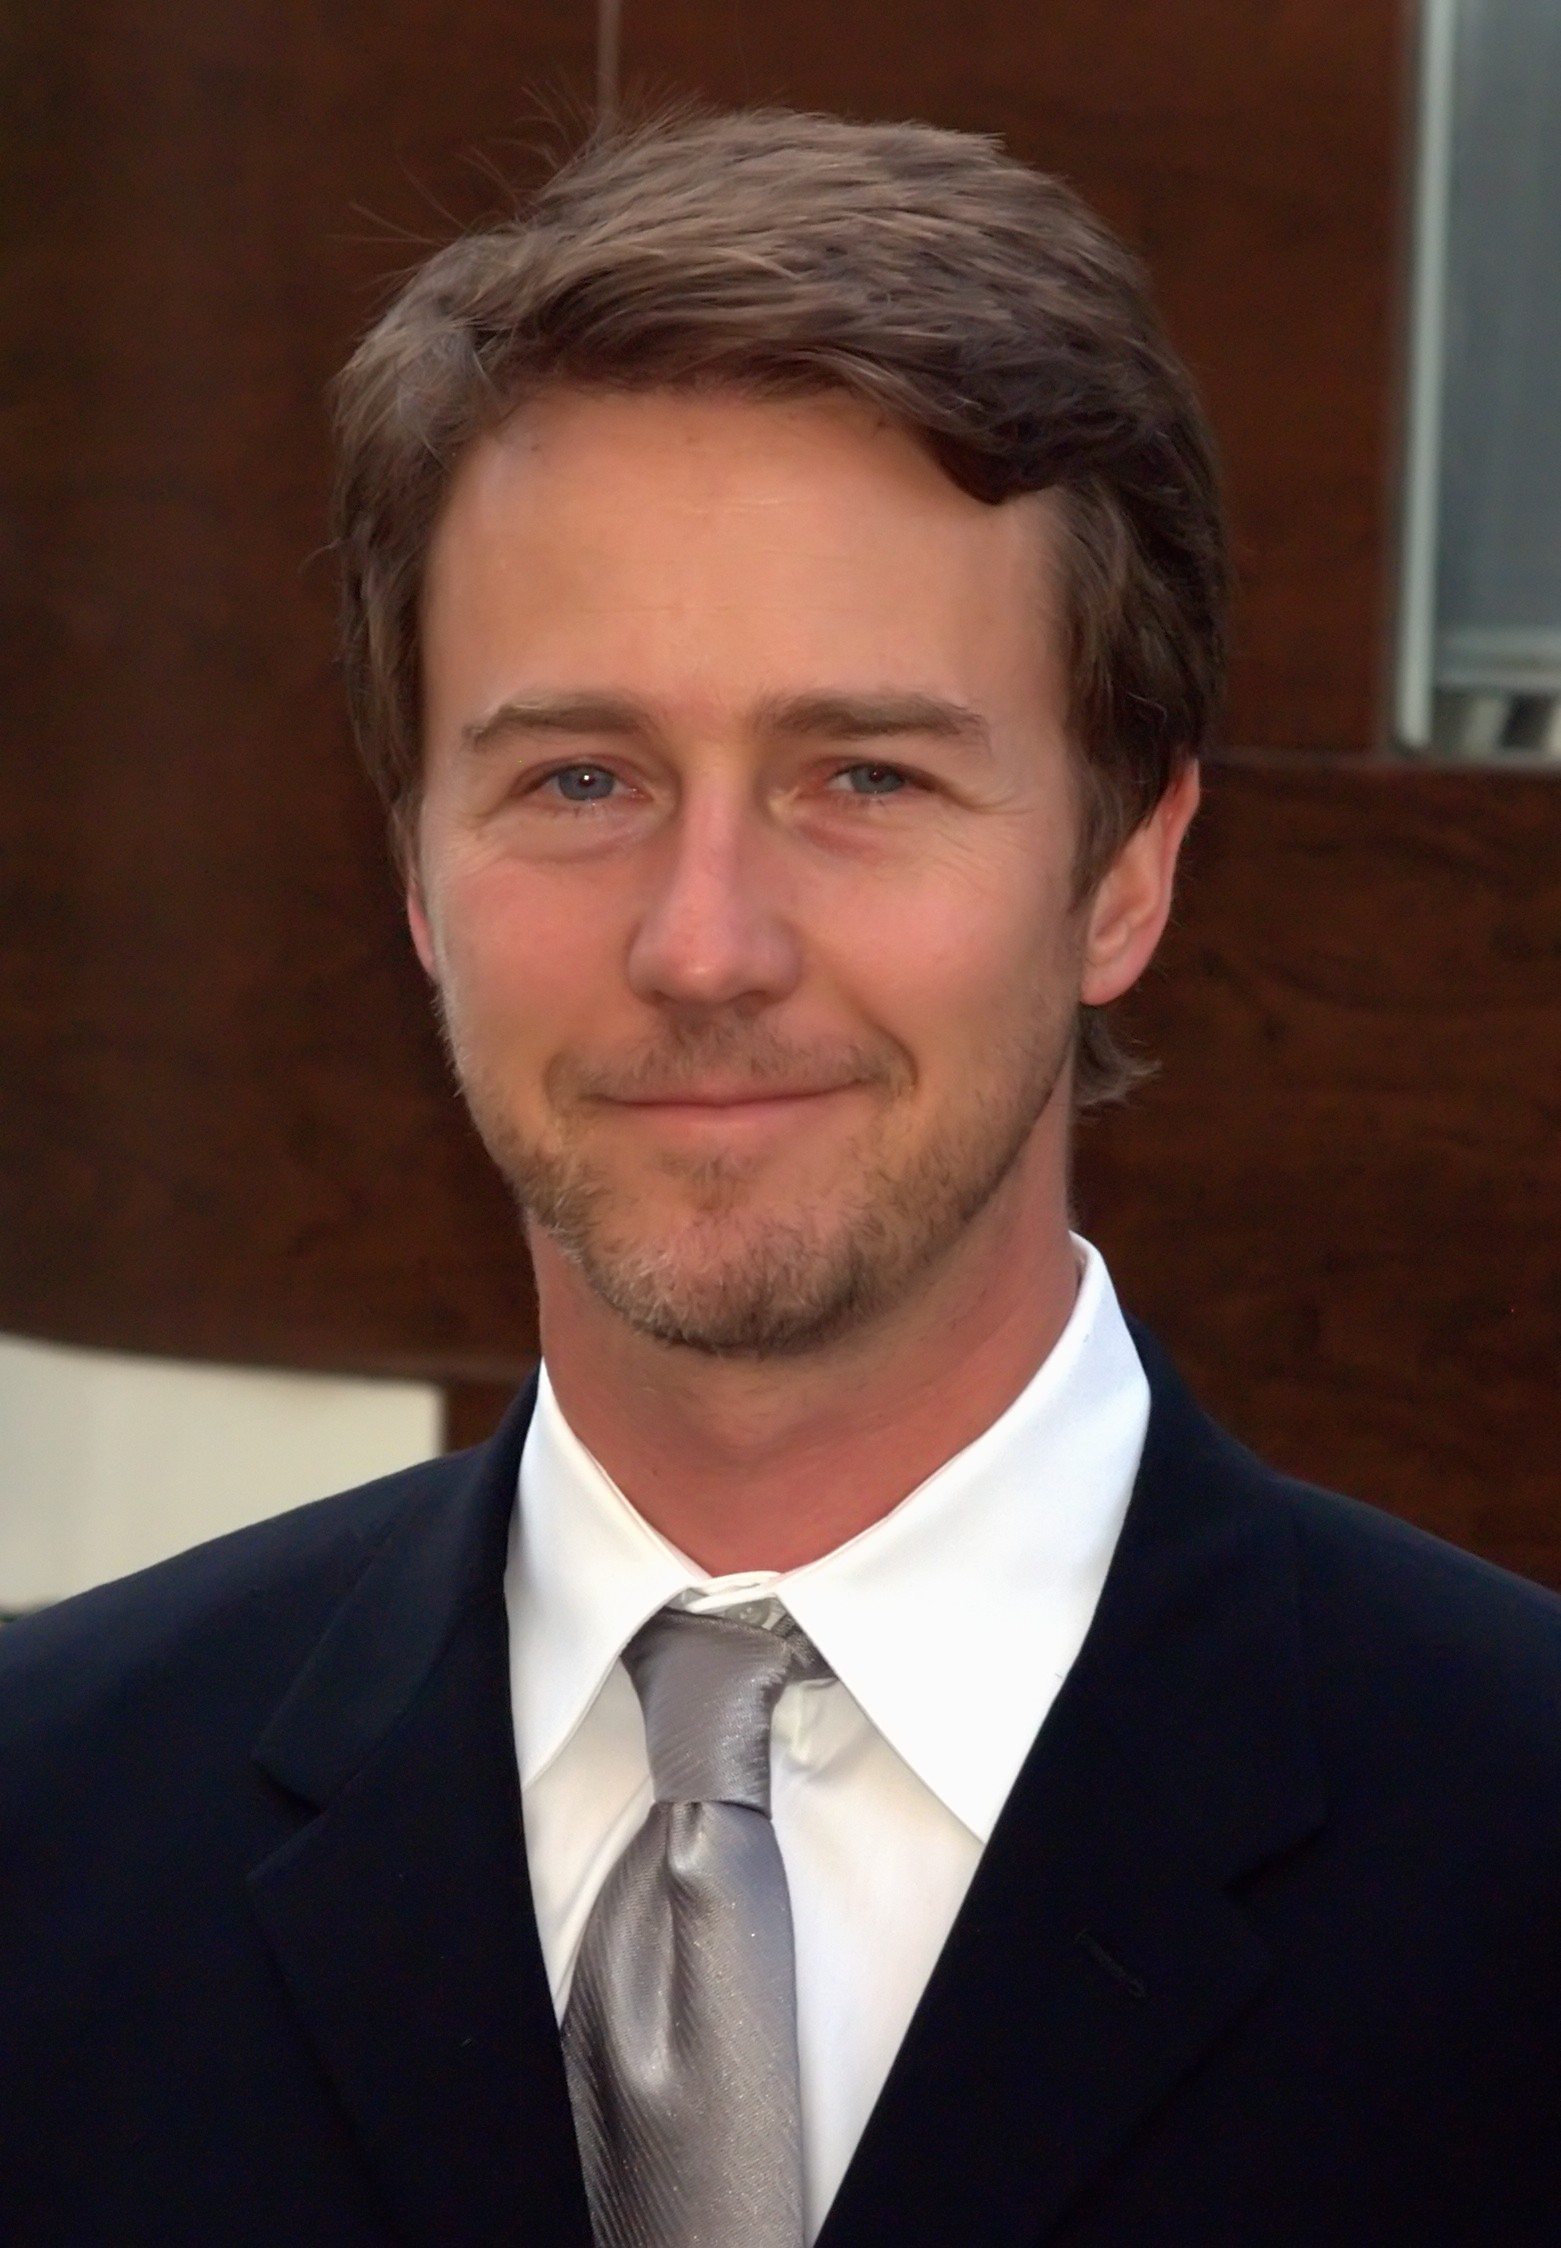 Edward Norton during the premiere of Metropolitan Opera in New York City